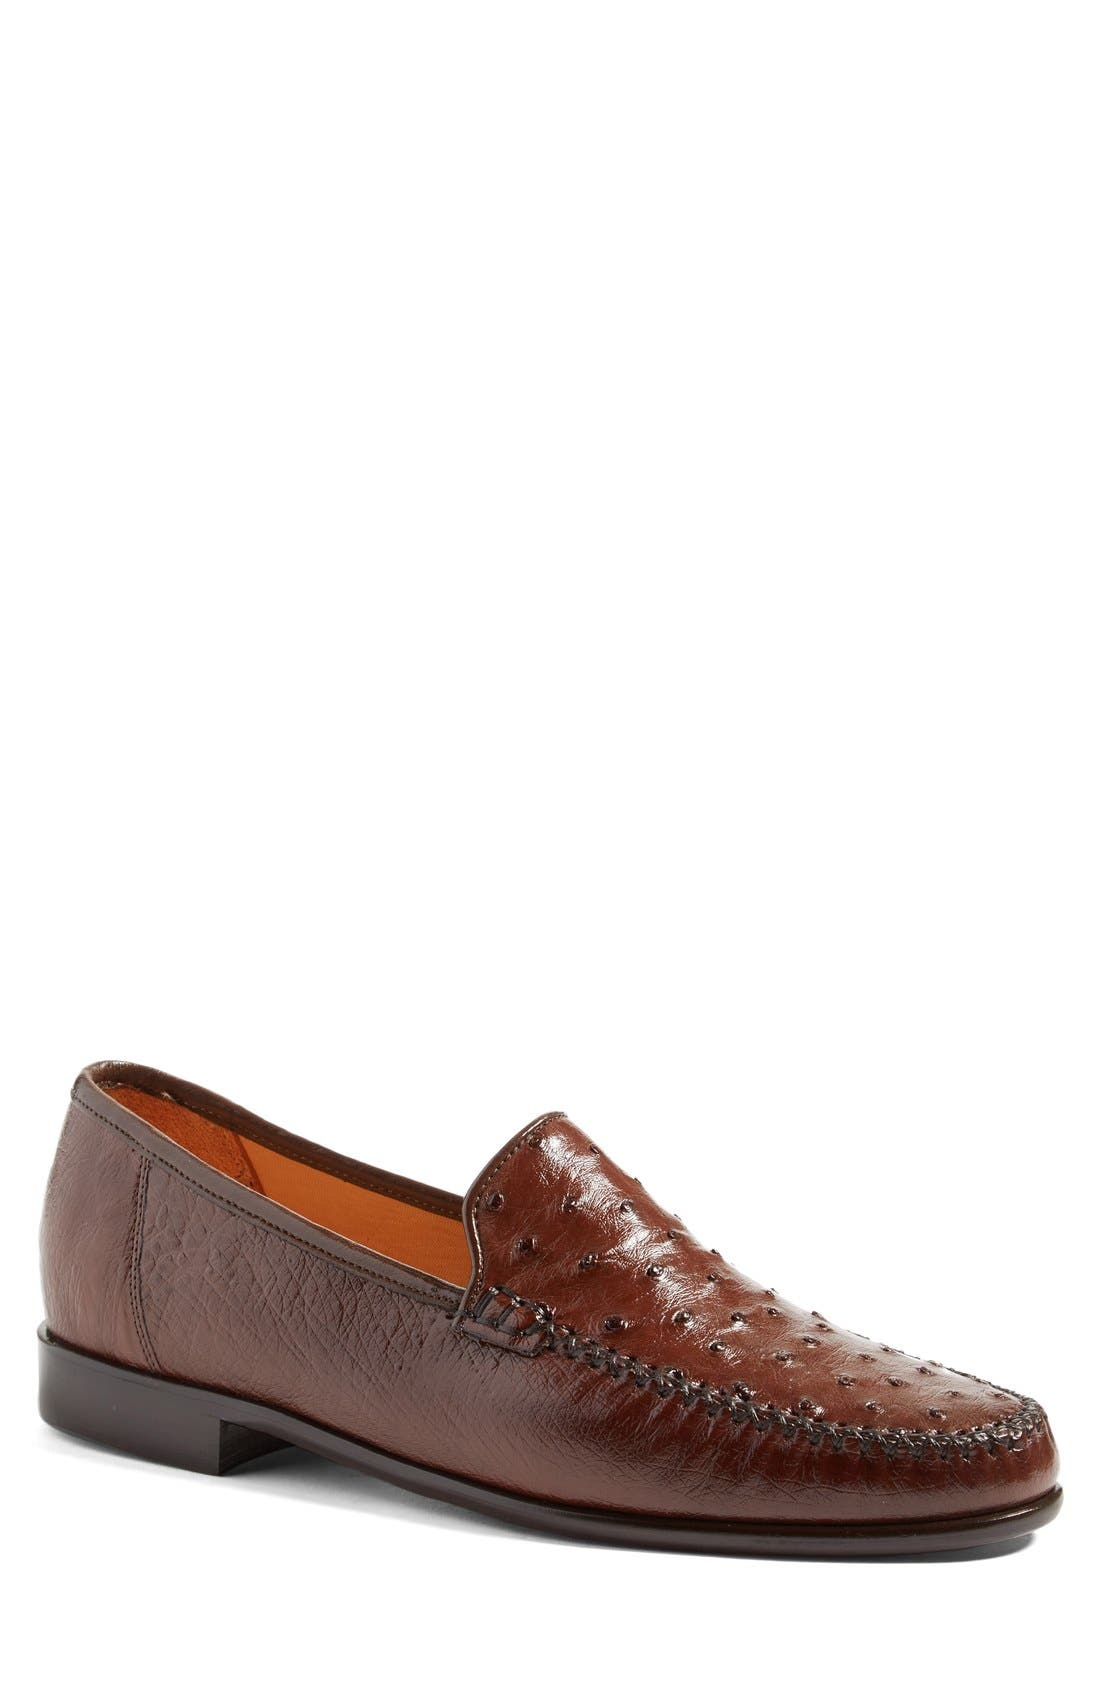 'Struzzo' Ostrich Slip-On Loafer,                             Main thumbnail 2, color,